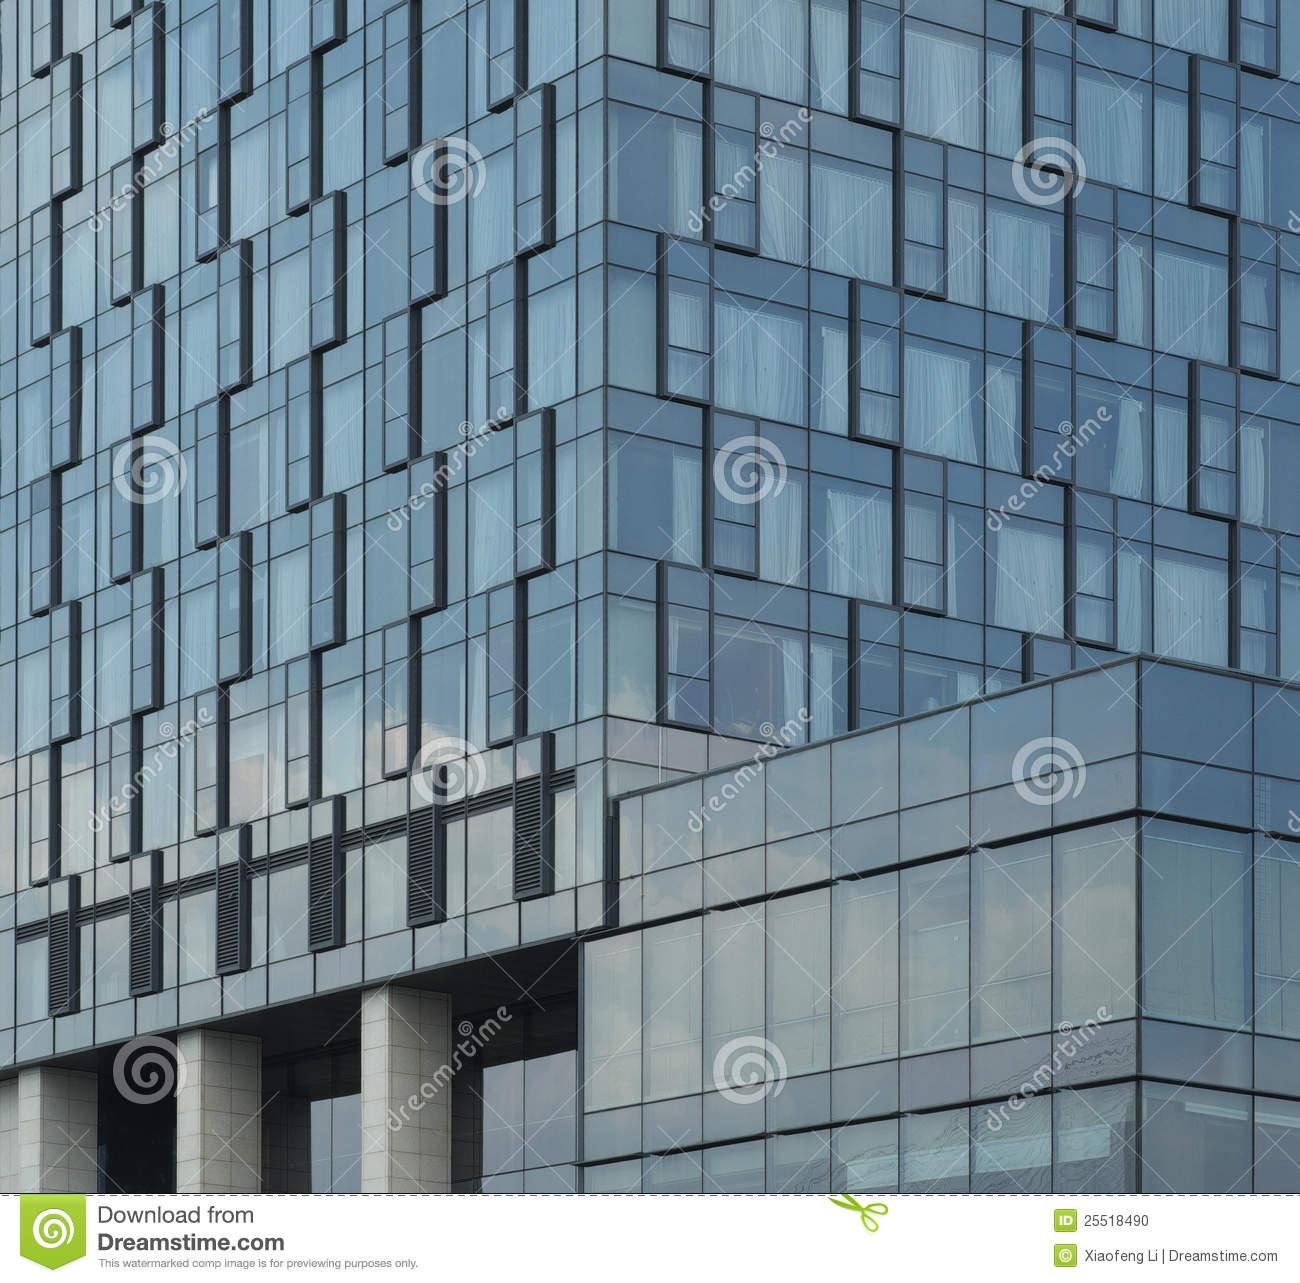 Glass Walls Of Modern Hotel rchitecture Stock Photo - Image: 25518490 - ^